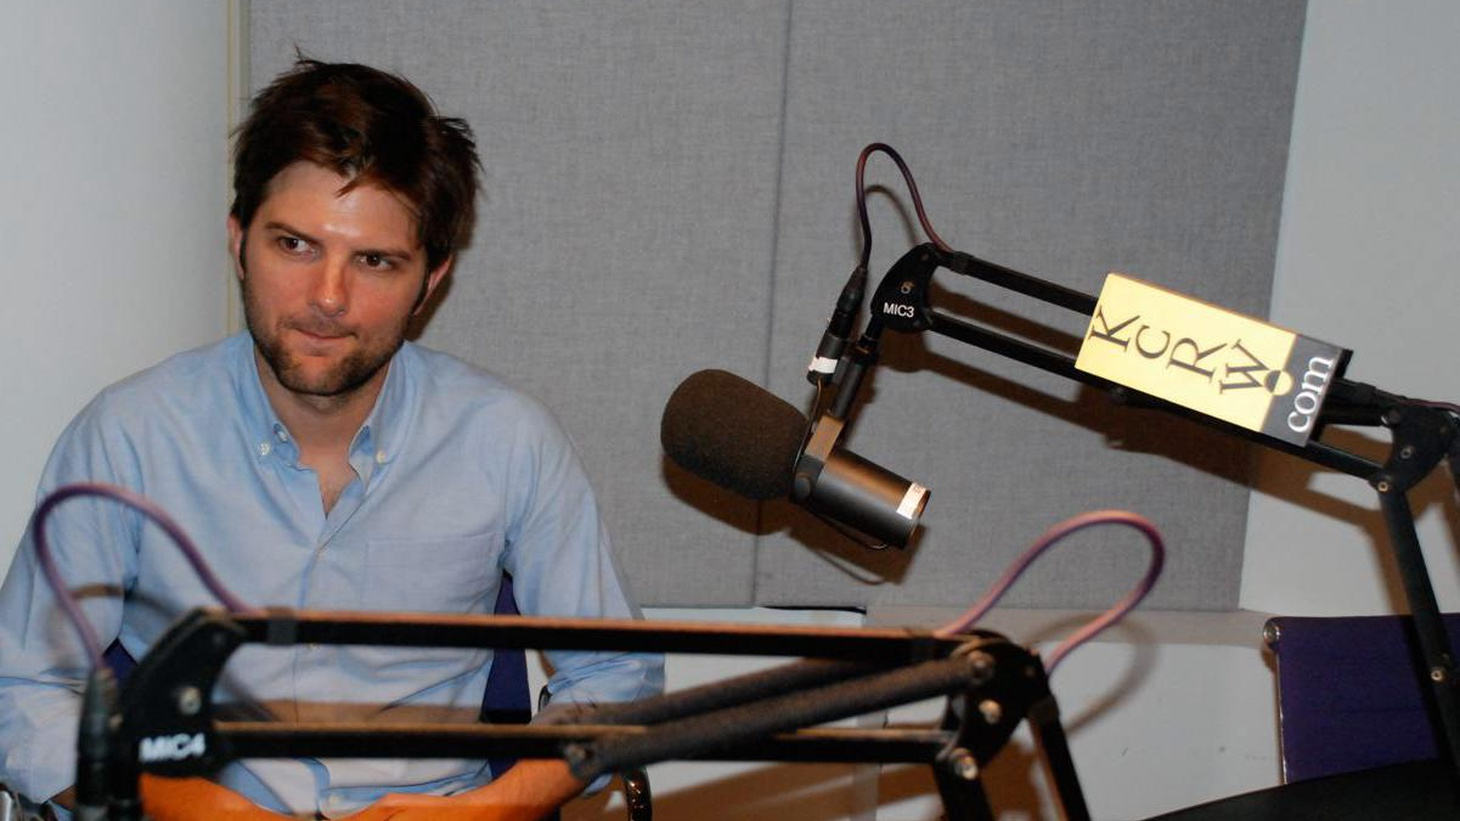 From indie film to Martin Scorsese, from Parks & Recreation on NBC to Party Down on Starz, Adam Scott The finale of Party Down is one more piece on his tray.